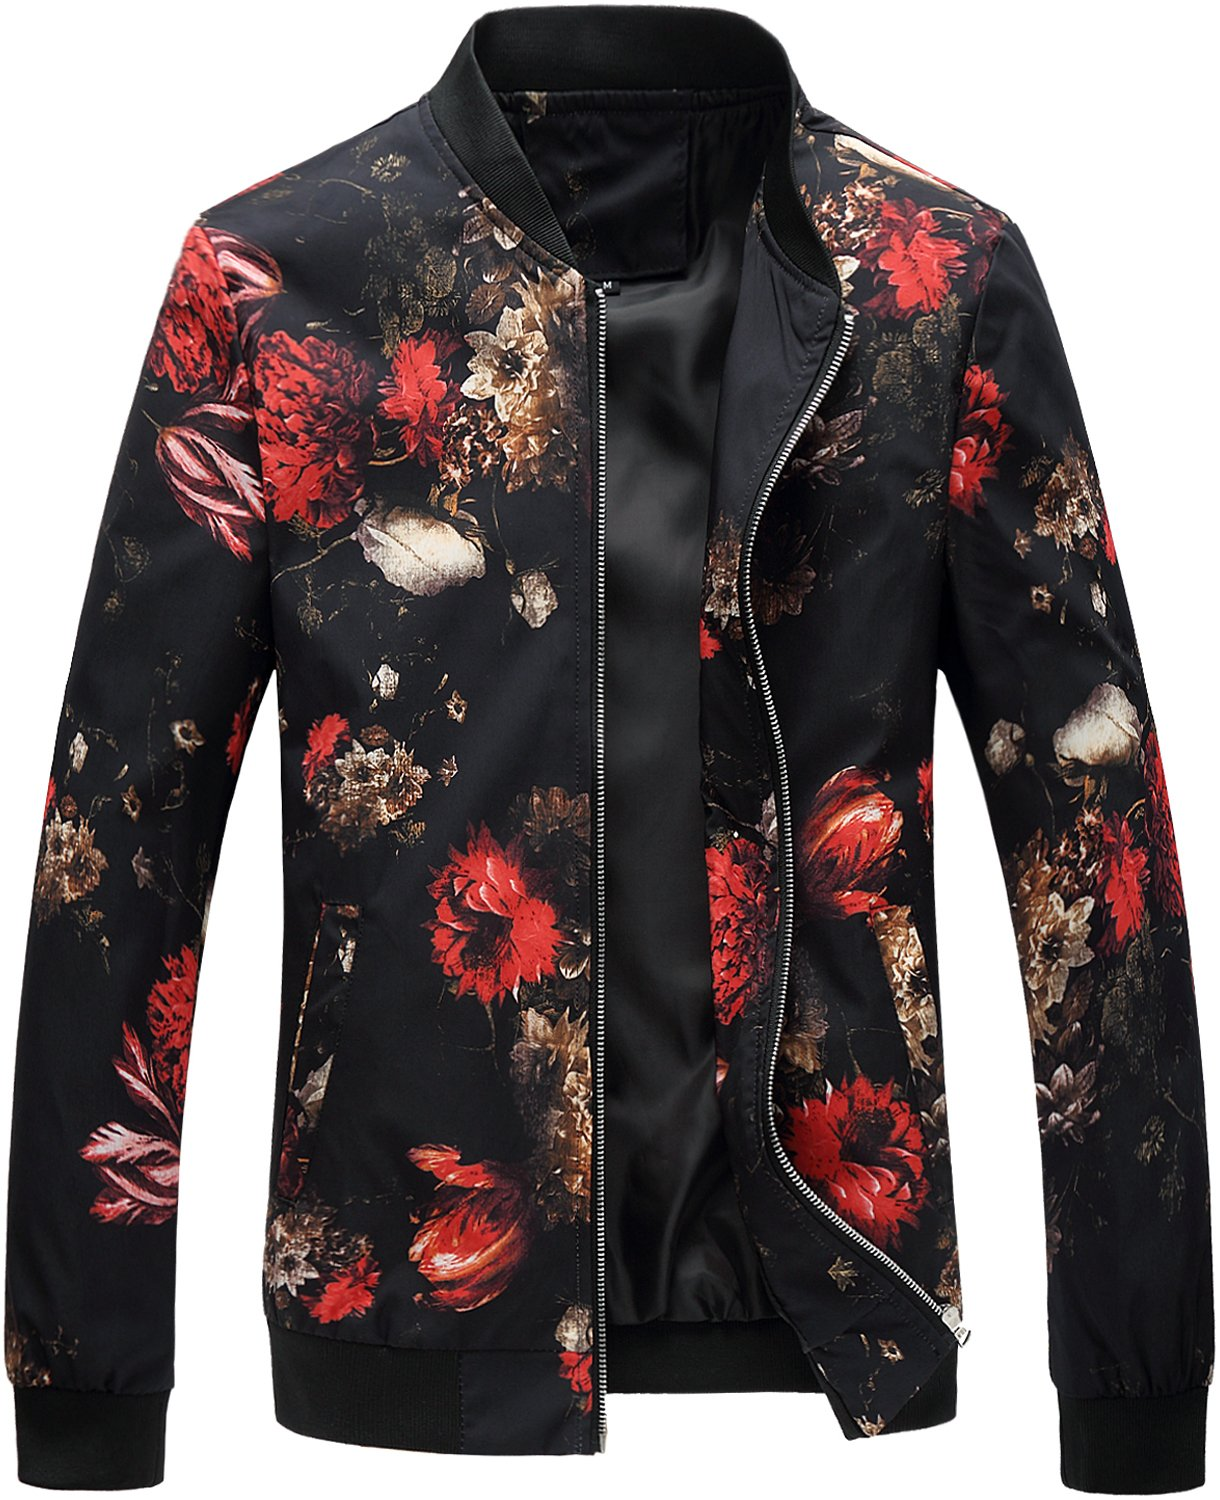 HENGAO Men's Casual Zipper Front Flowers Print Lightweight Varsity Jacket, JK776 Black, S/36 = Tag L by HENGAO